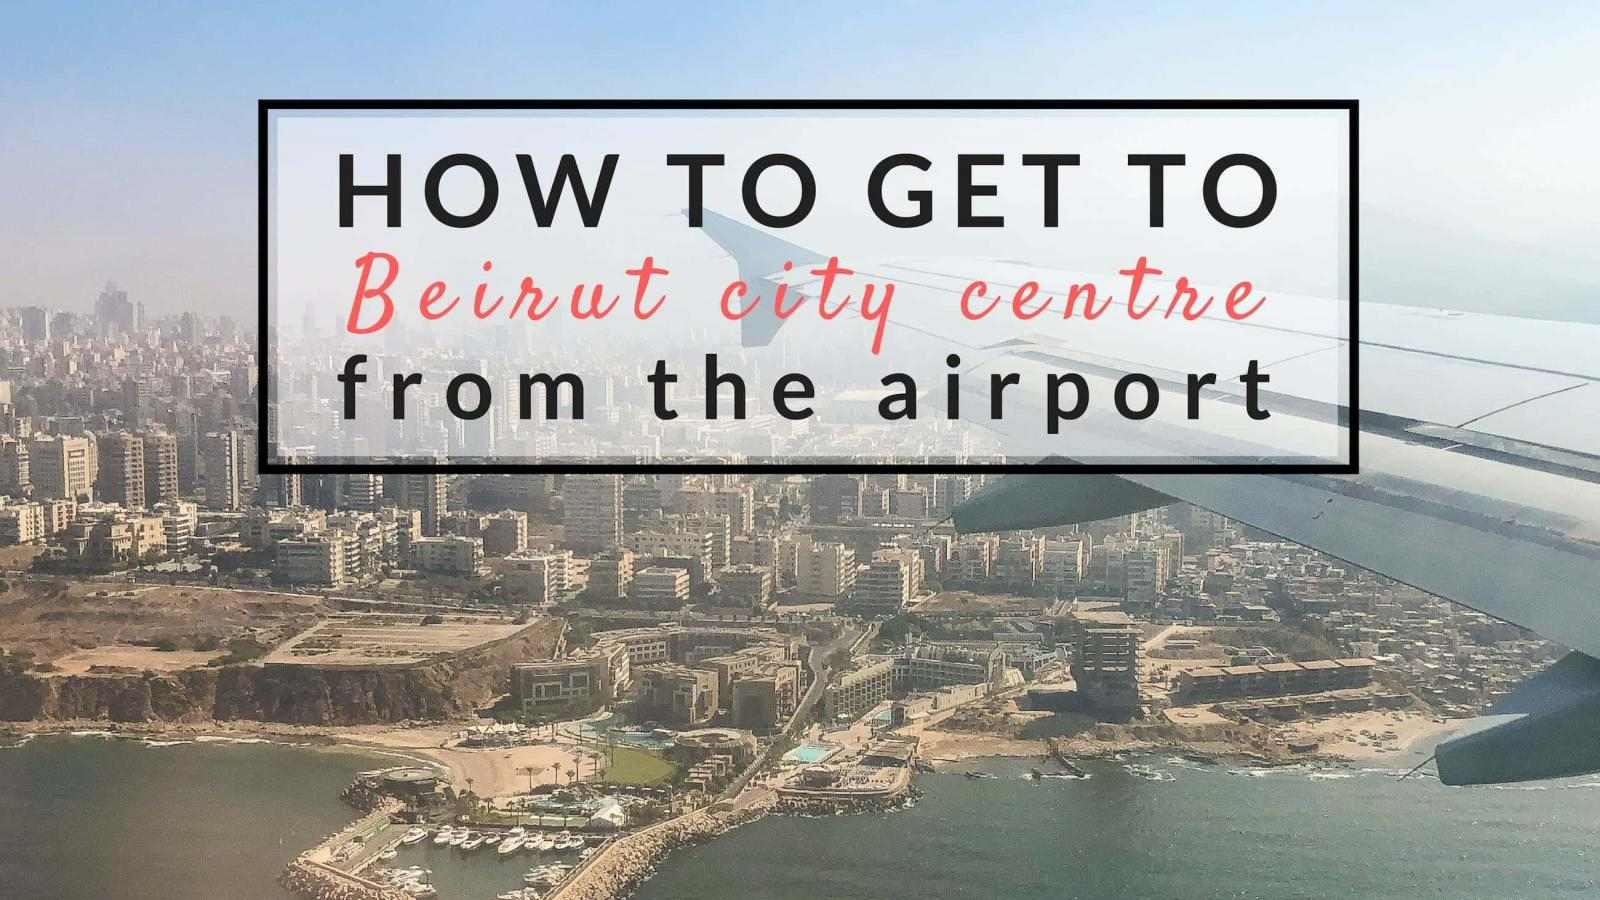 Detailed guide for how to get from Beirut airport to the city centre